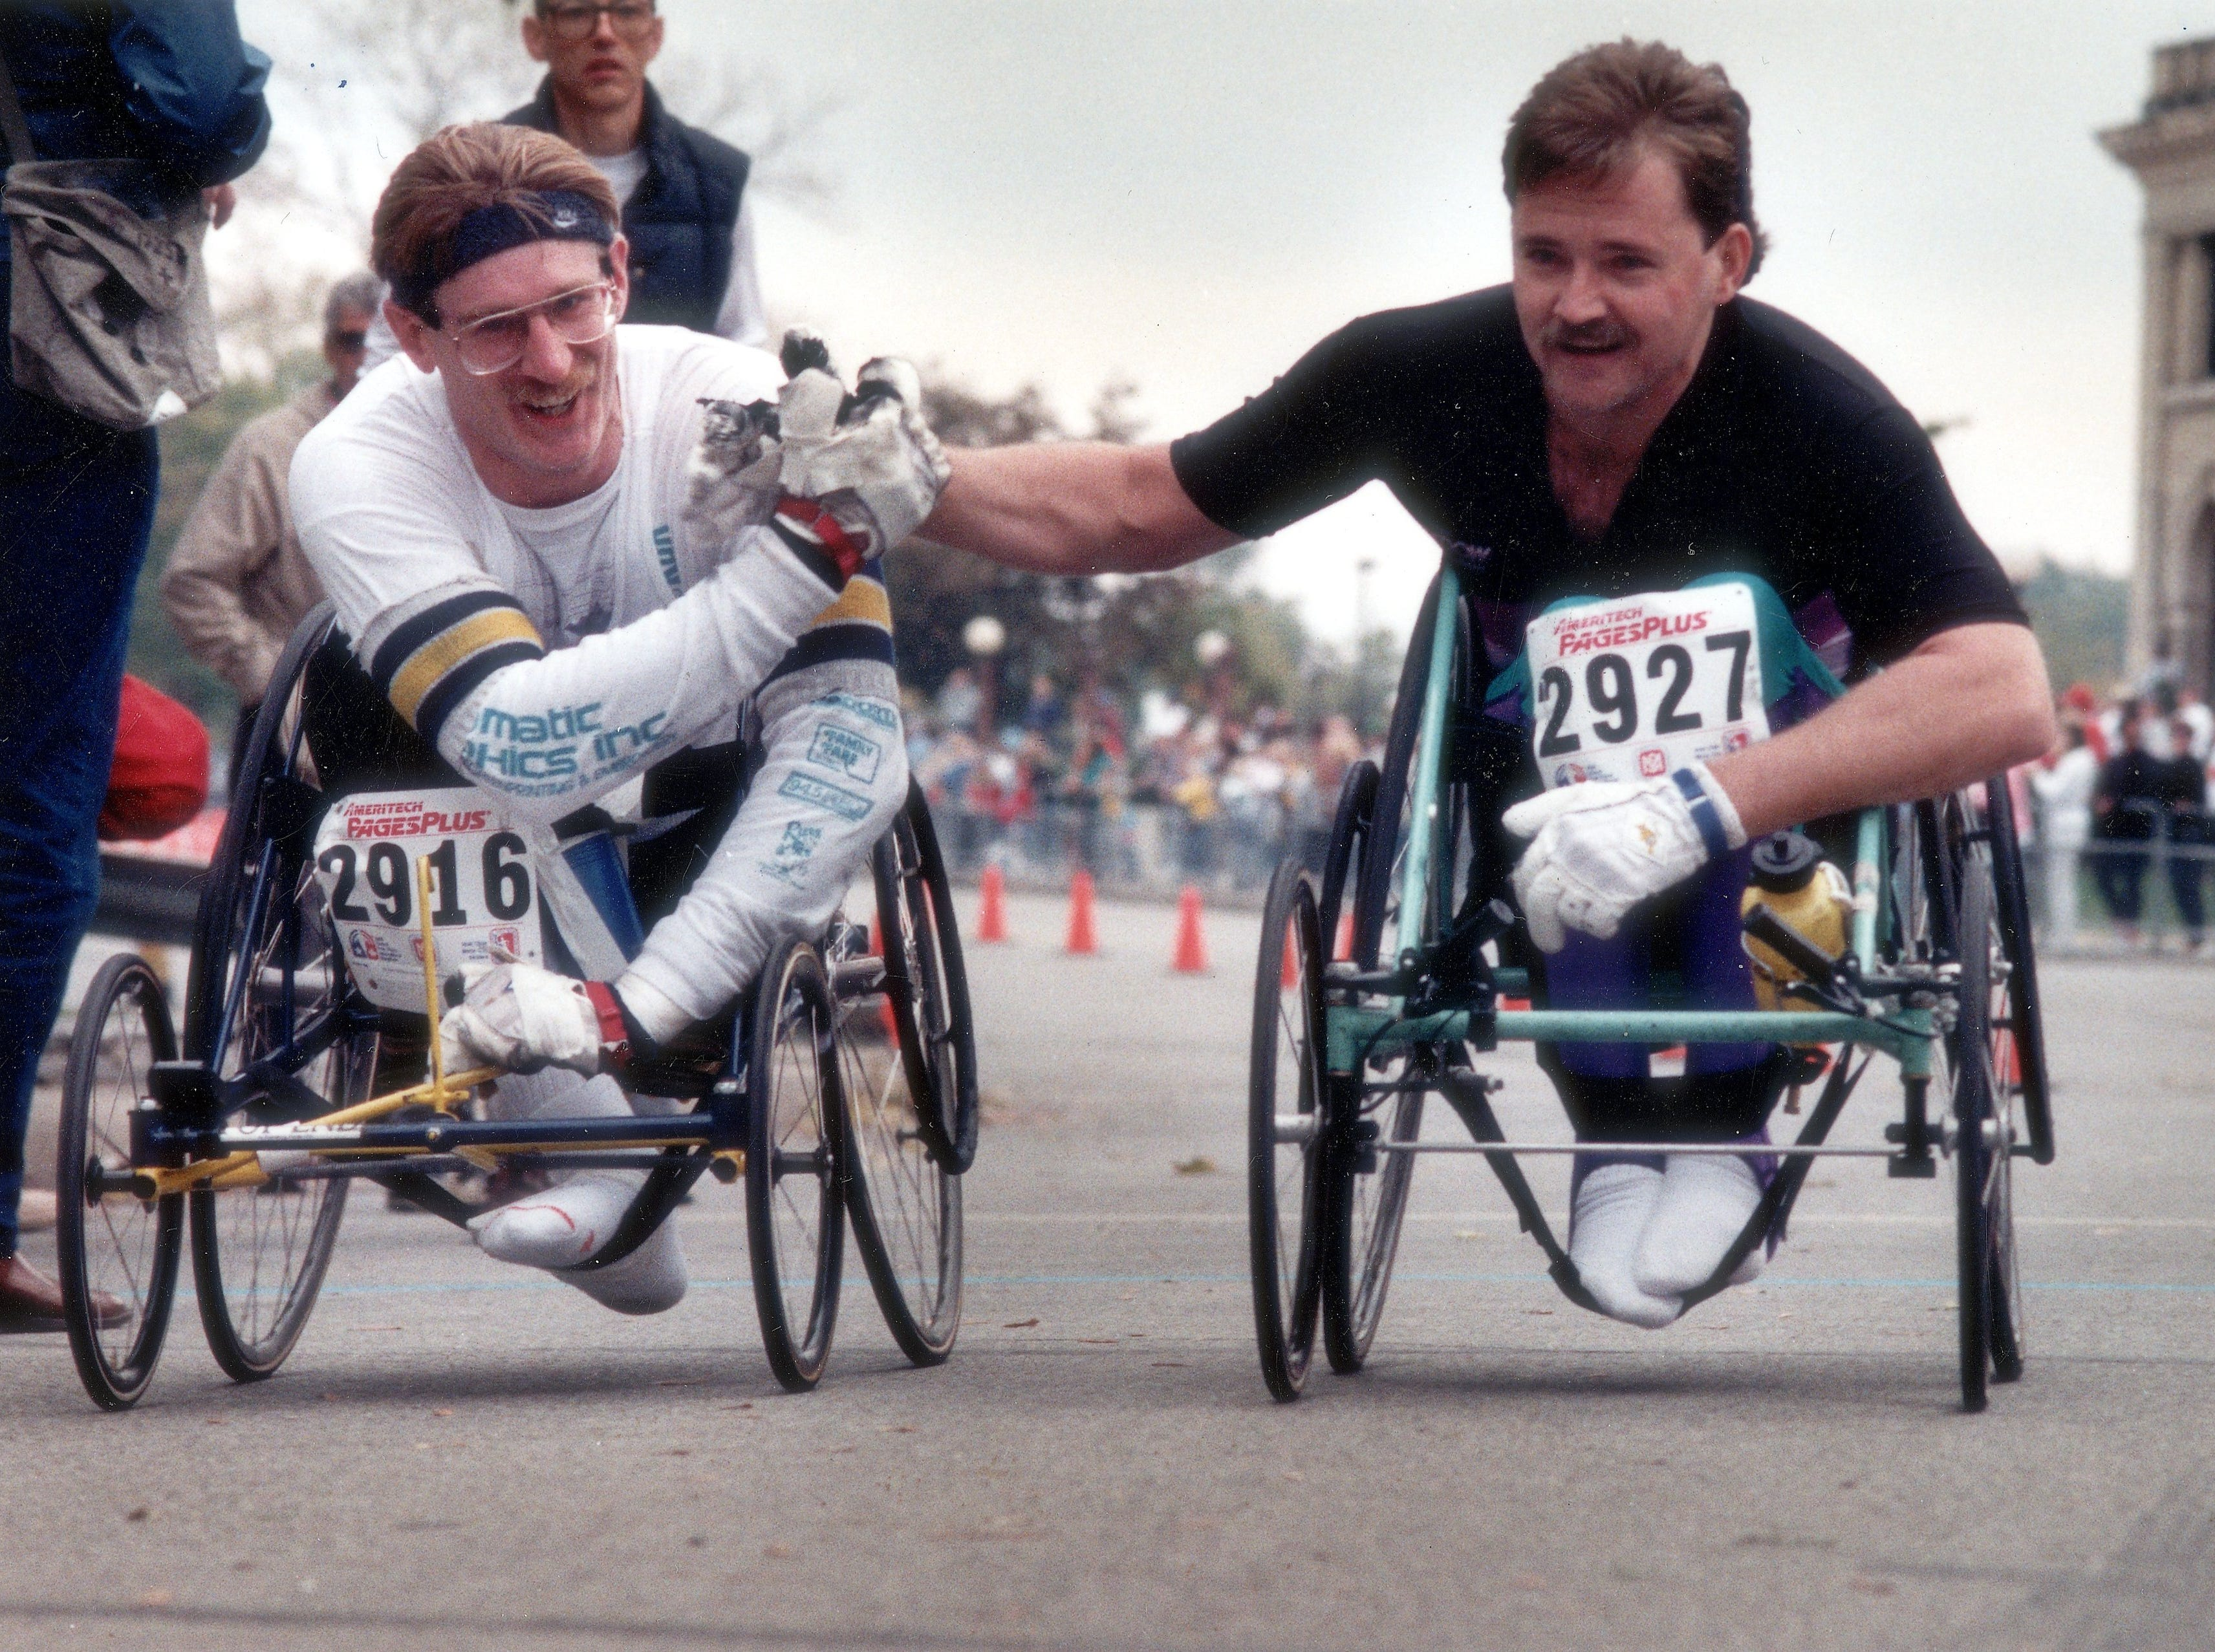 1988 Free Press Marathon Chuck Patton of Belding, left, and Gene Root of Livonia congratulate each other as they cross the finish line with a time of 2:28.25.